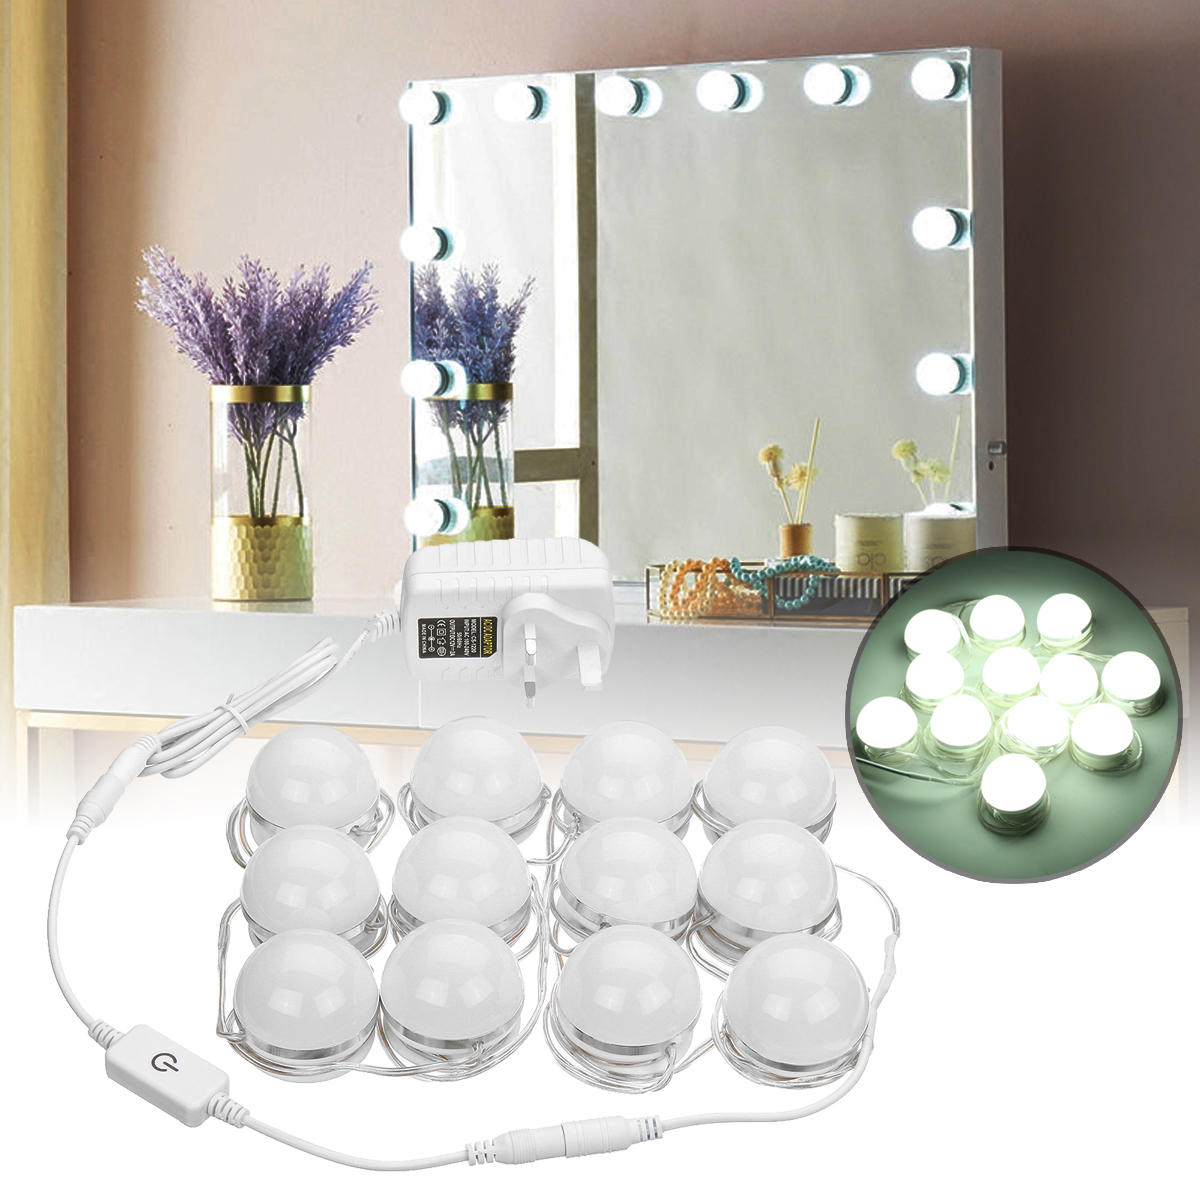 AC100-240V 24 W 12 PC Hollywood Stil LED Eitelkeit Make-Up Dressing Tisch Spiegel Licht Kit + UK/US/ AU/EU Stecker